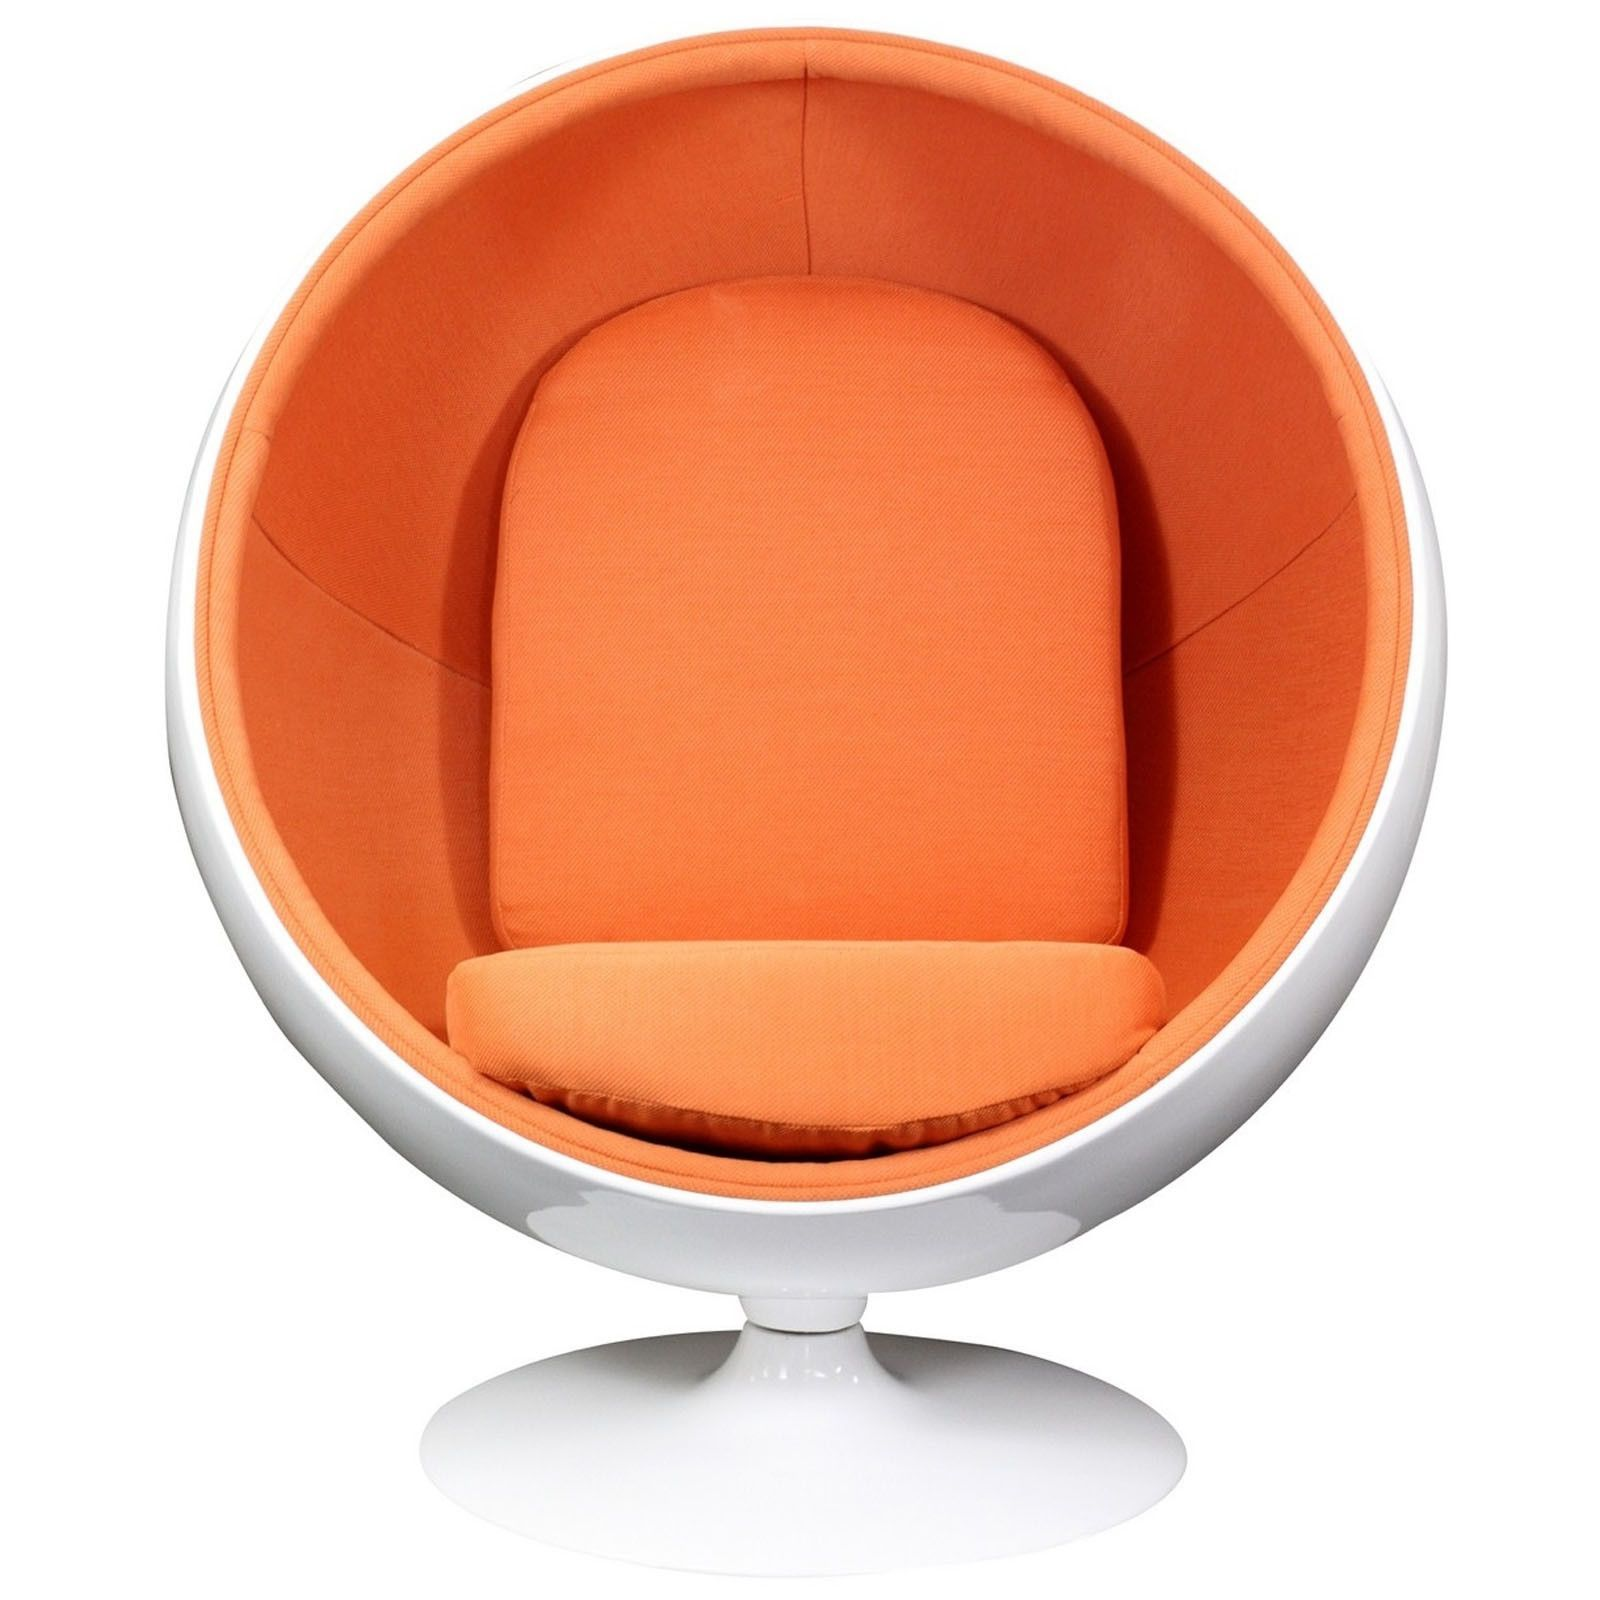 Kaddur Lounge Chair In Orange Pinterest Products - Lobster-and-shelly-lounge-chairs-by-oluf-lund-and-eva-paarmann